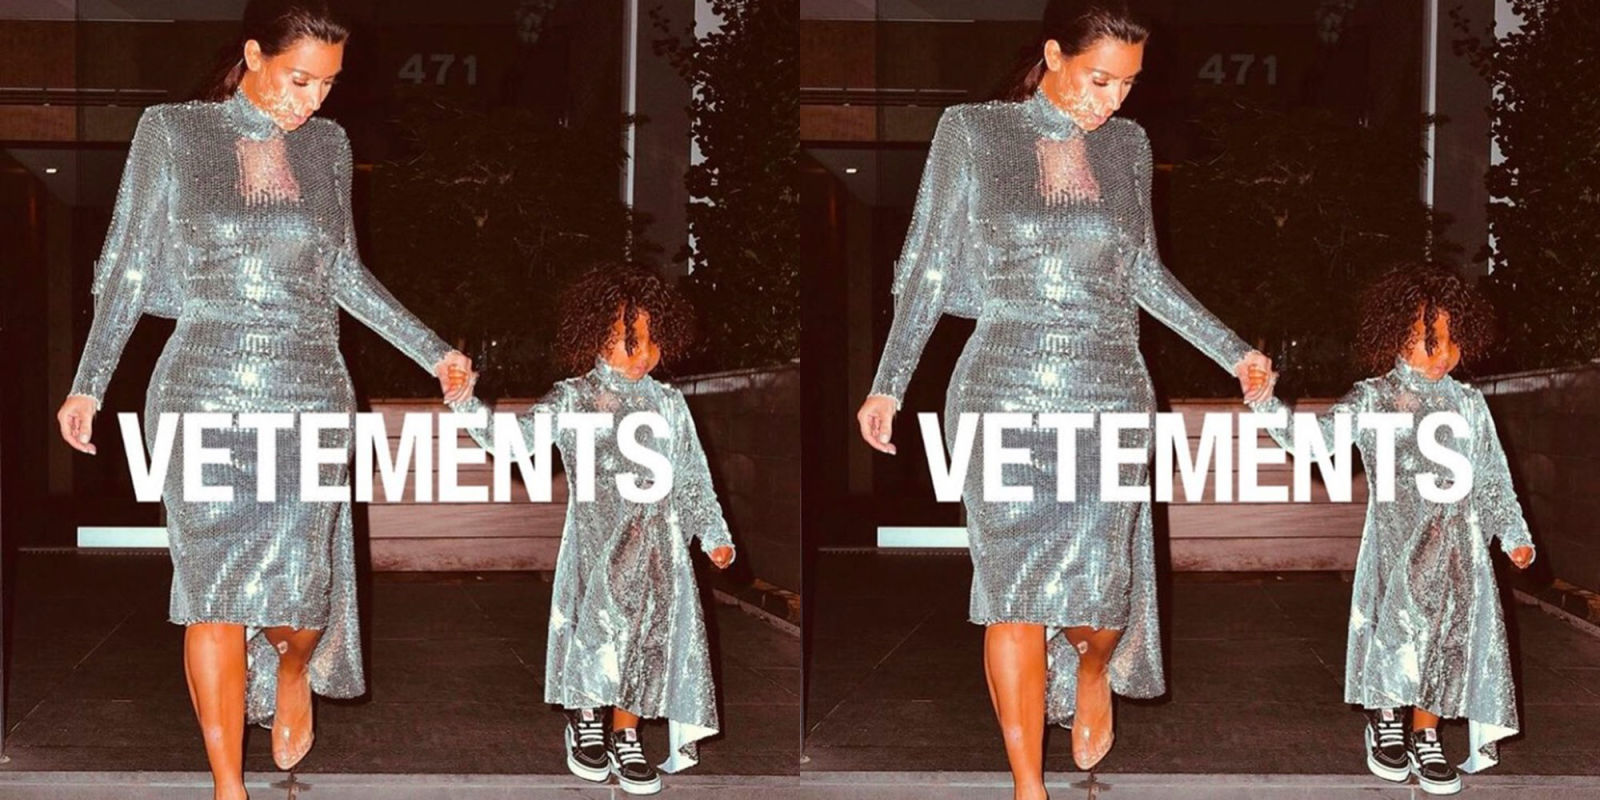 Kim Kardashian Reacts To Accusations That She's Stolen Vetements Designs